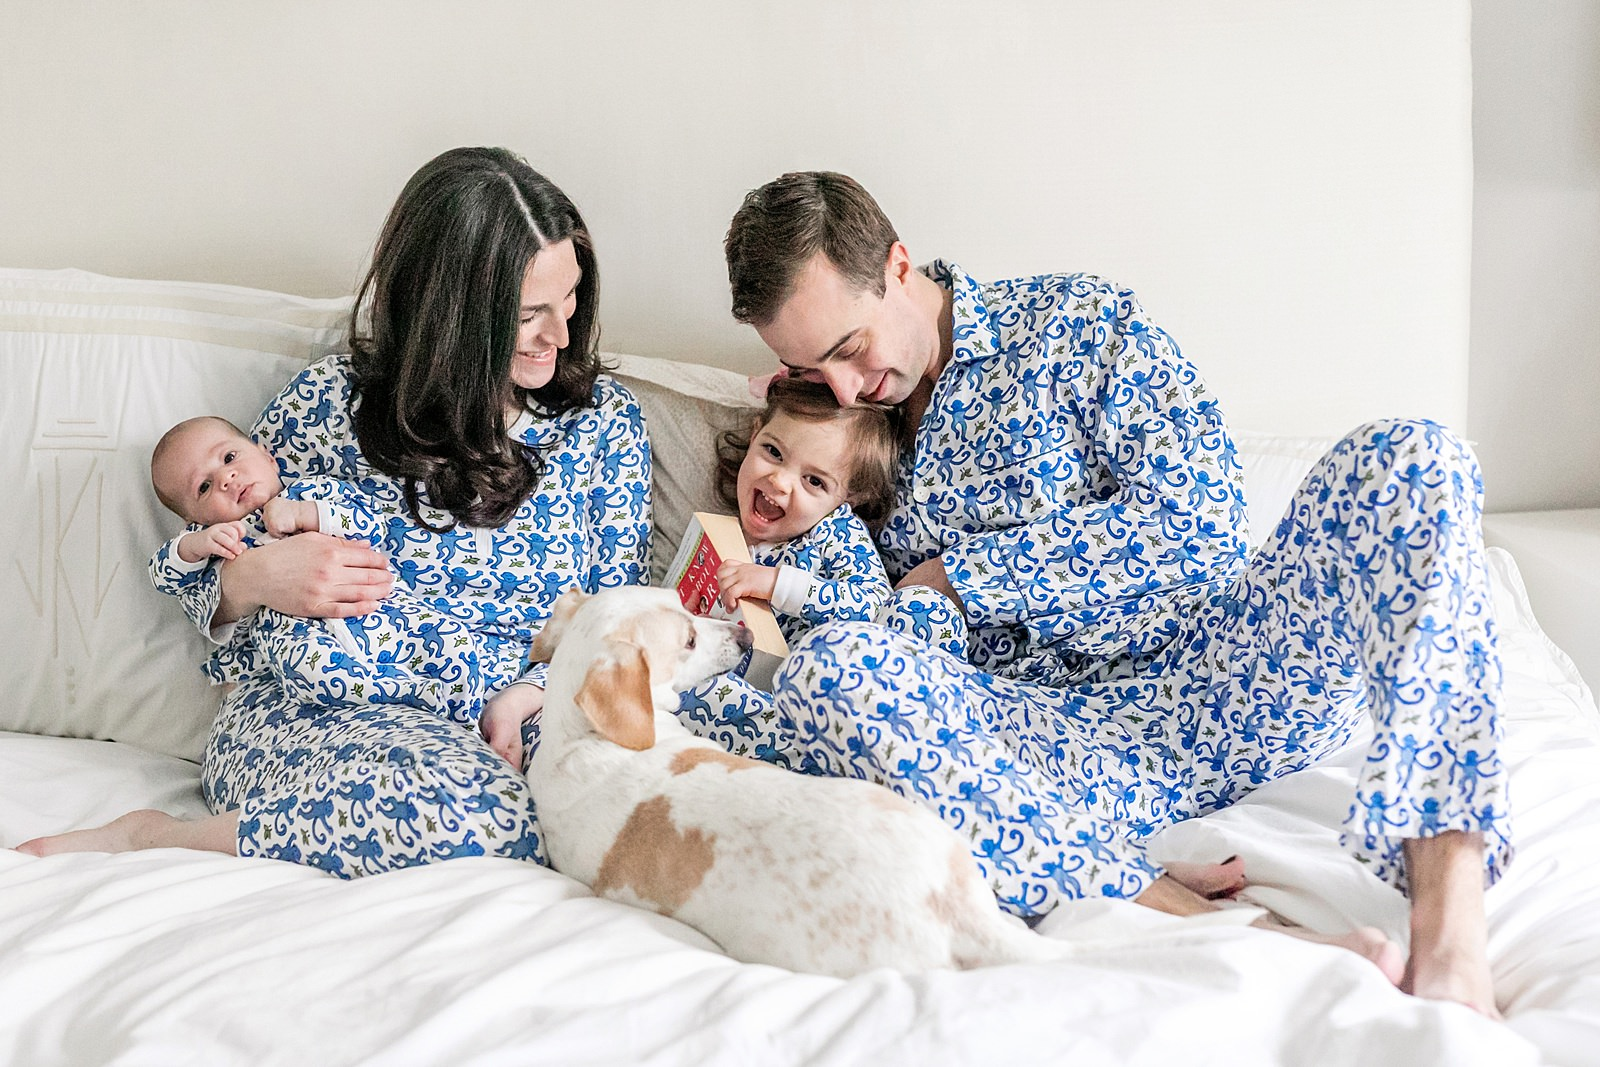 matching pajamas family photo